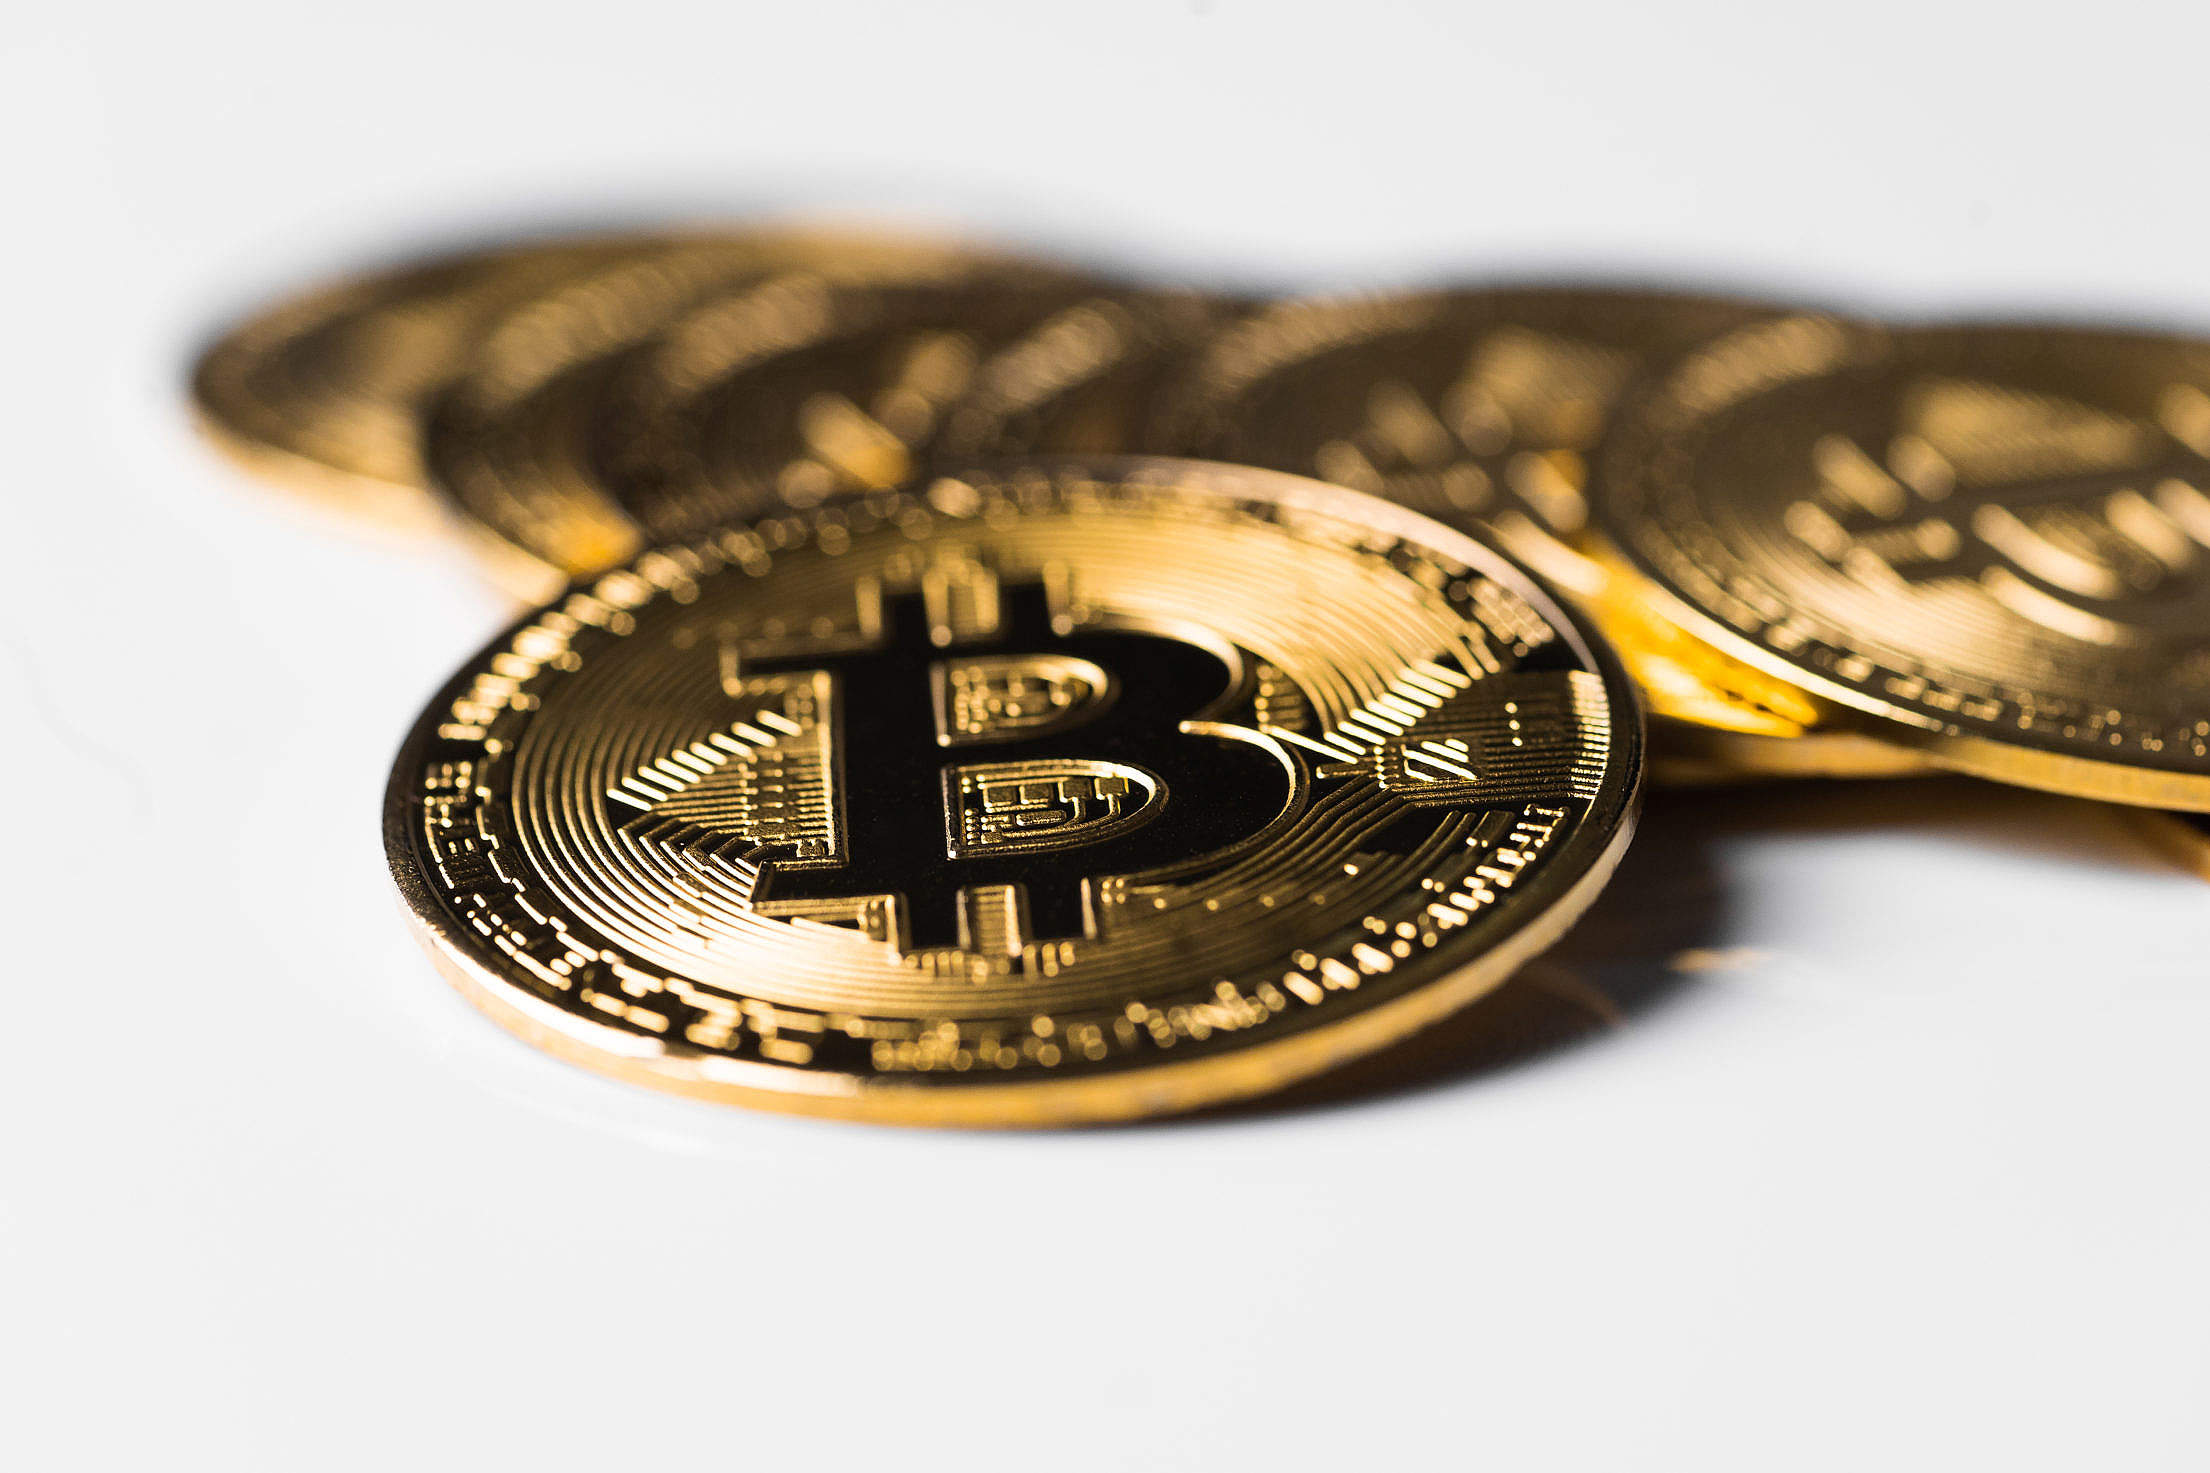 Golden Bitcoin Isolated on The White Background Free Stock Photo